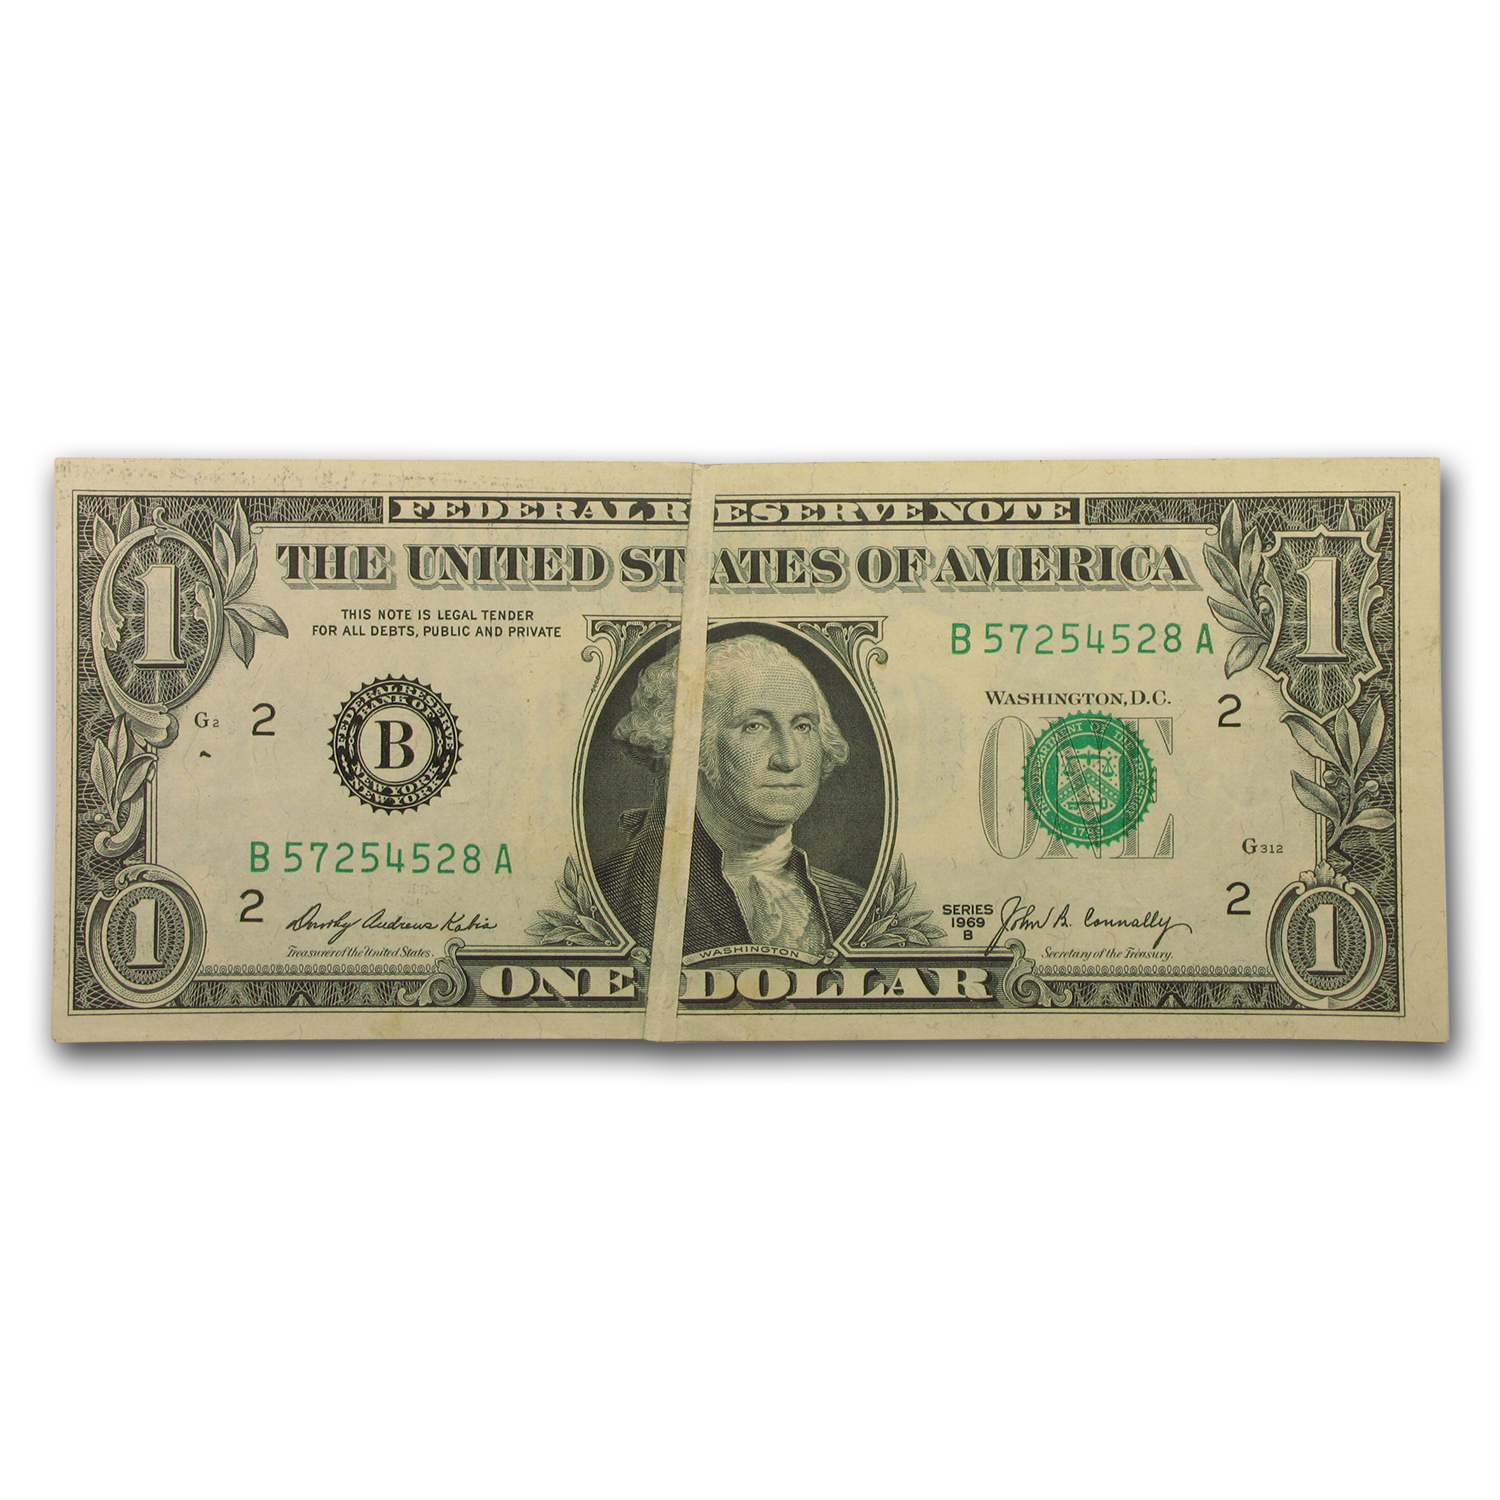 1969-B $1.00 Federal Reserve Note (Gutter Fold Error)